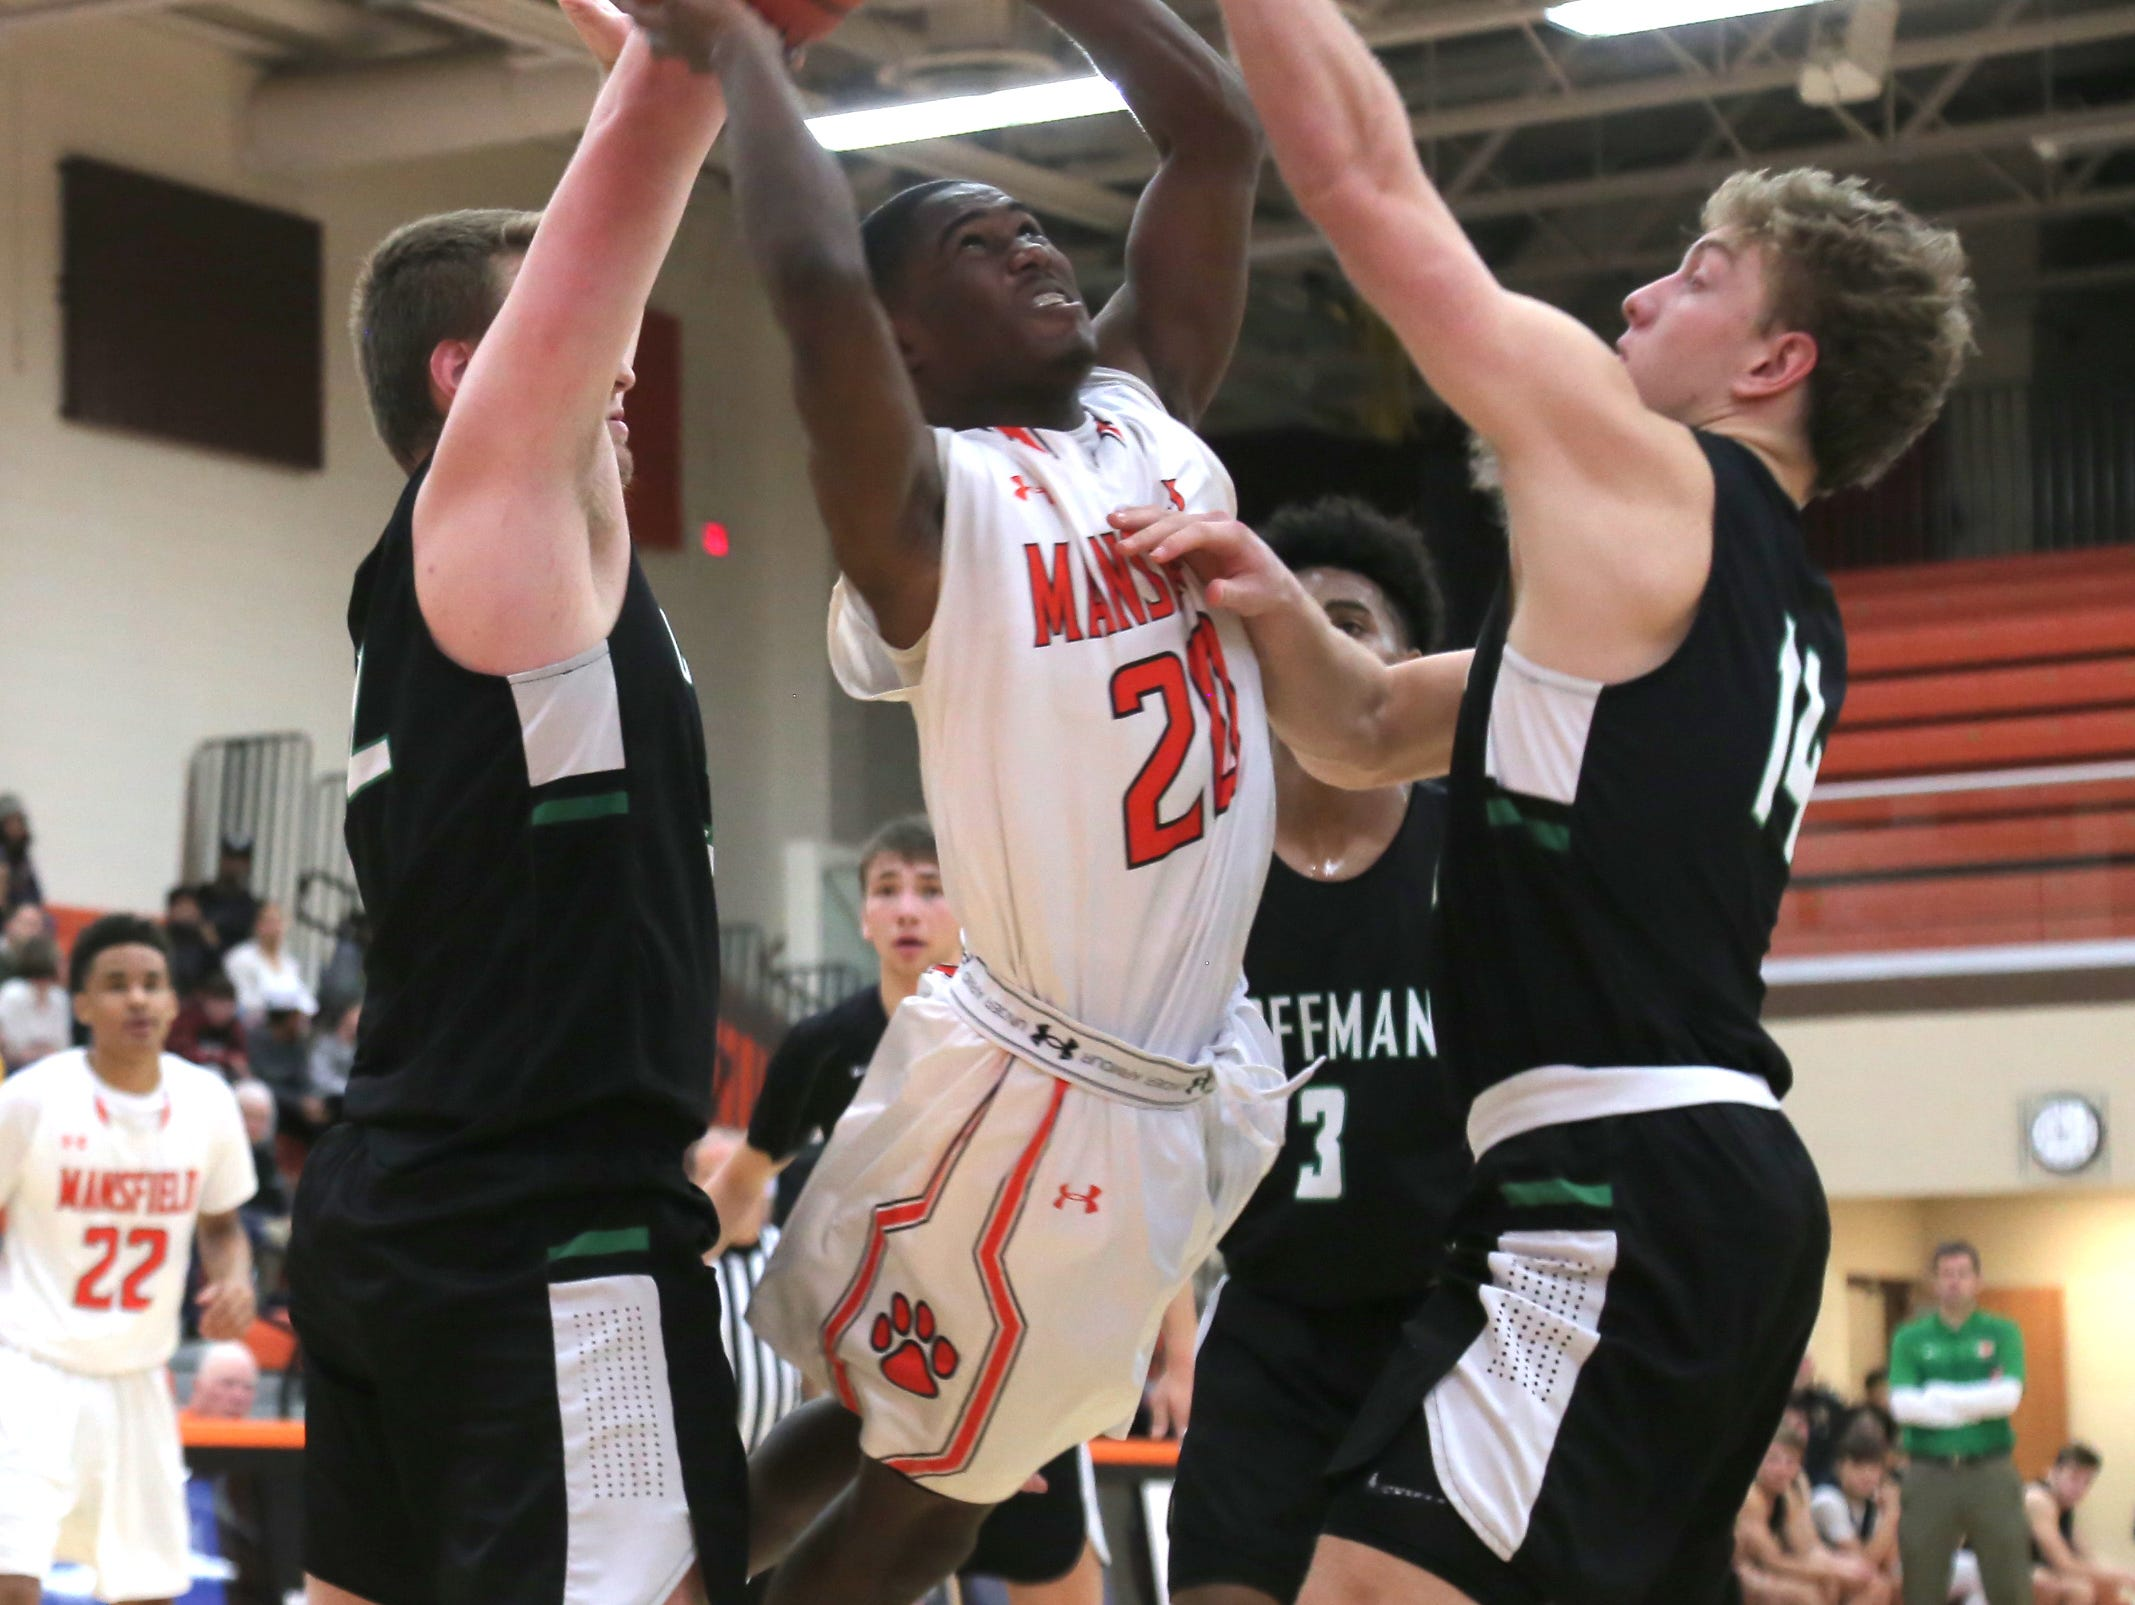 Mansfield Senior's Tavion Harris attempts a jump shot while playing against Dublin Coffman on Friday.